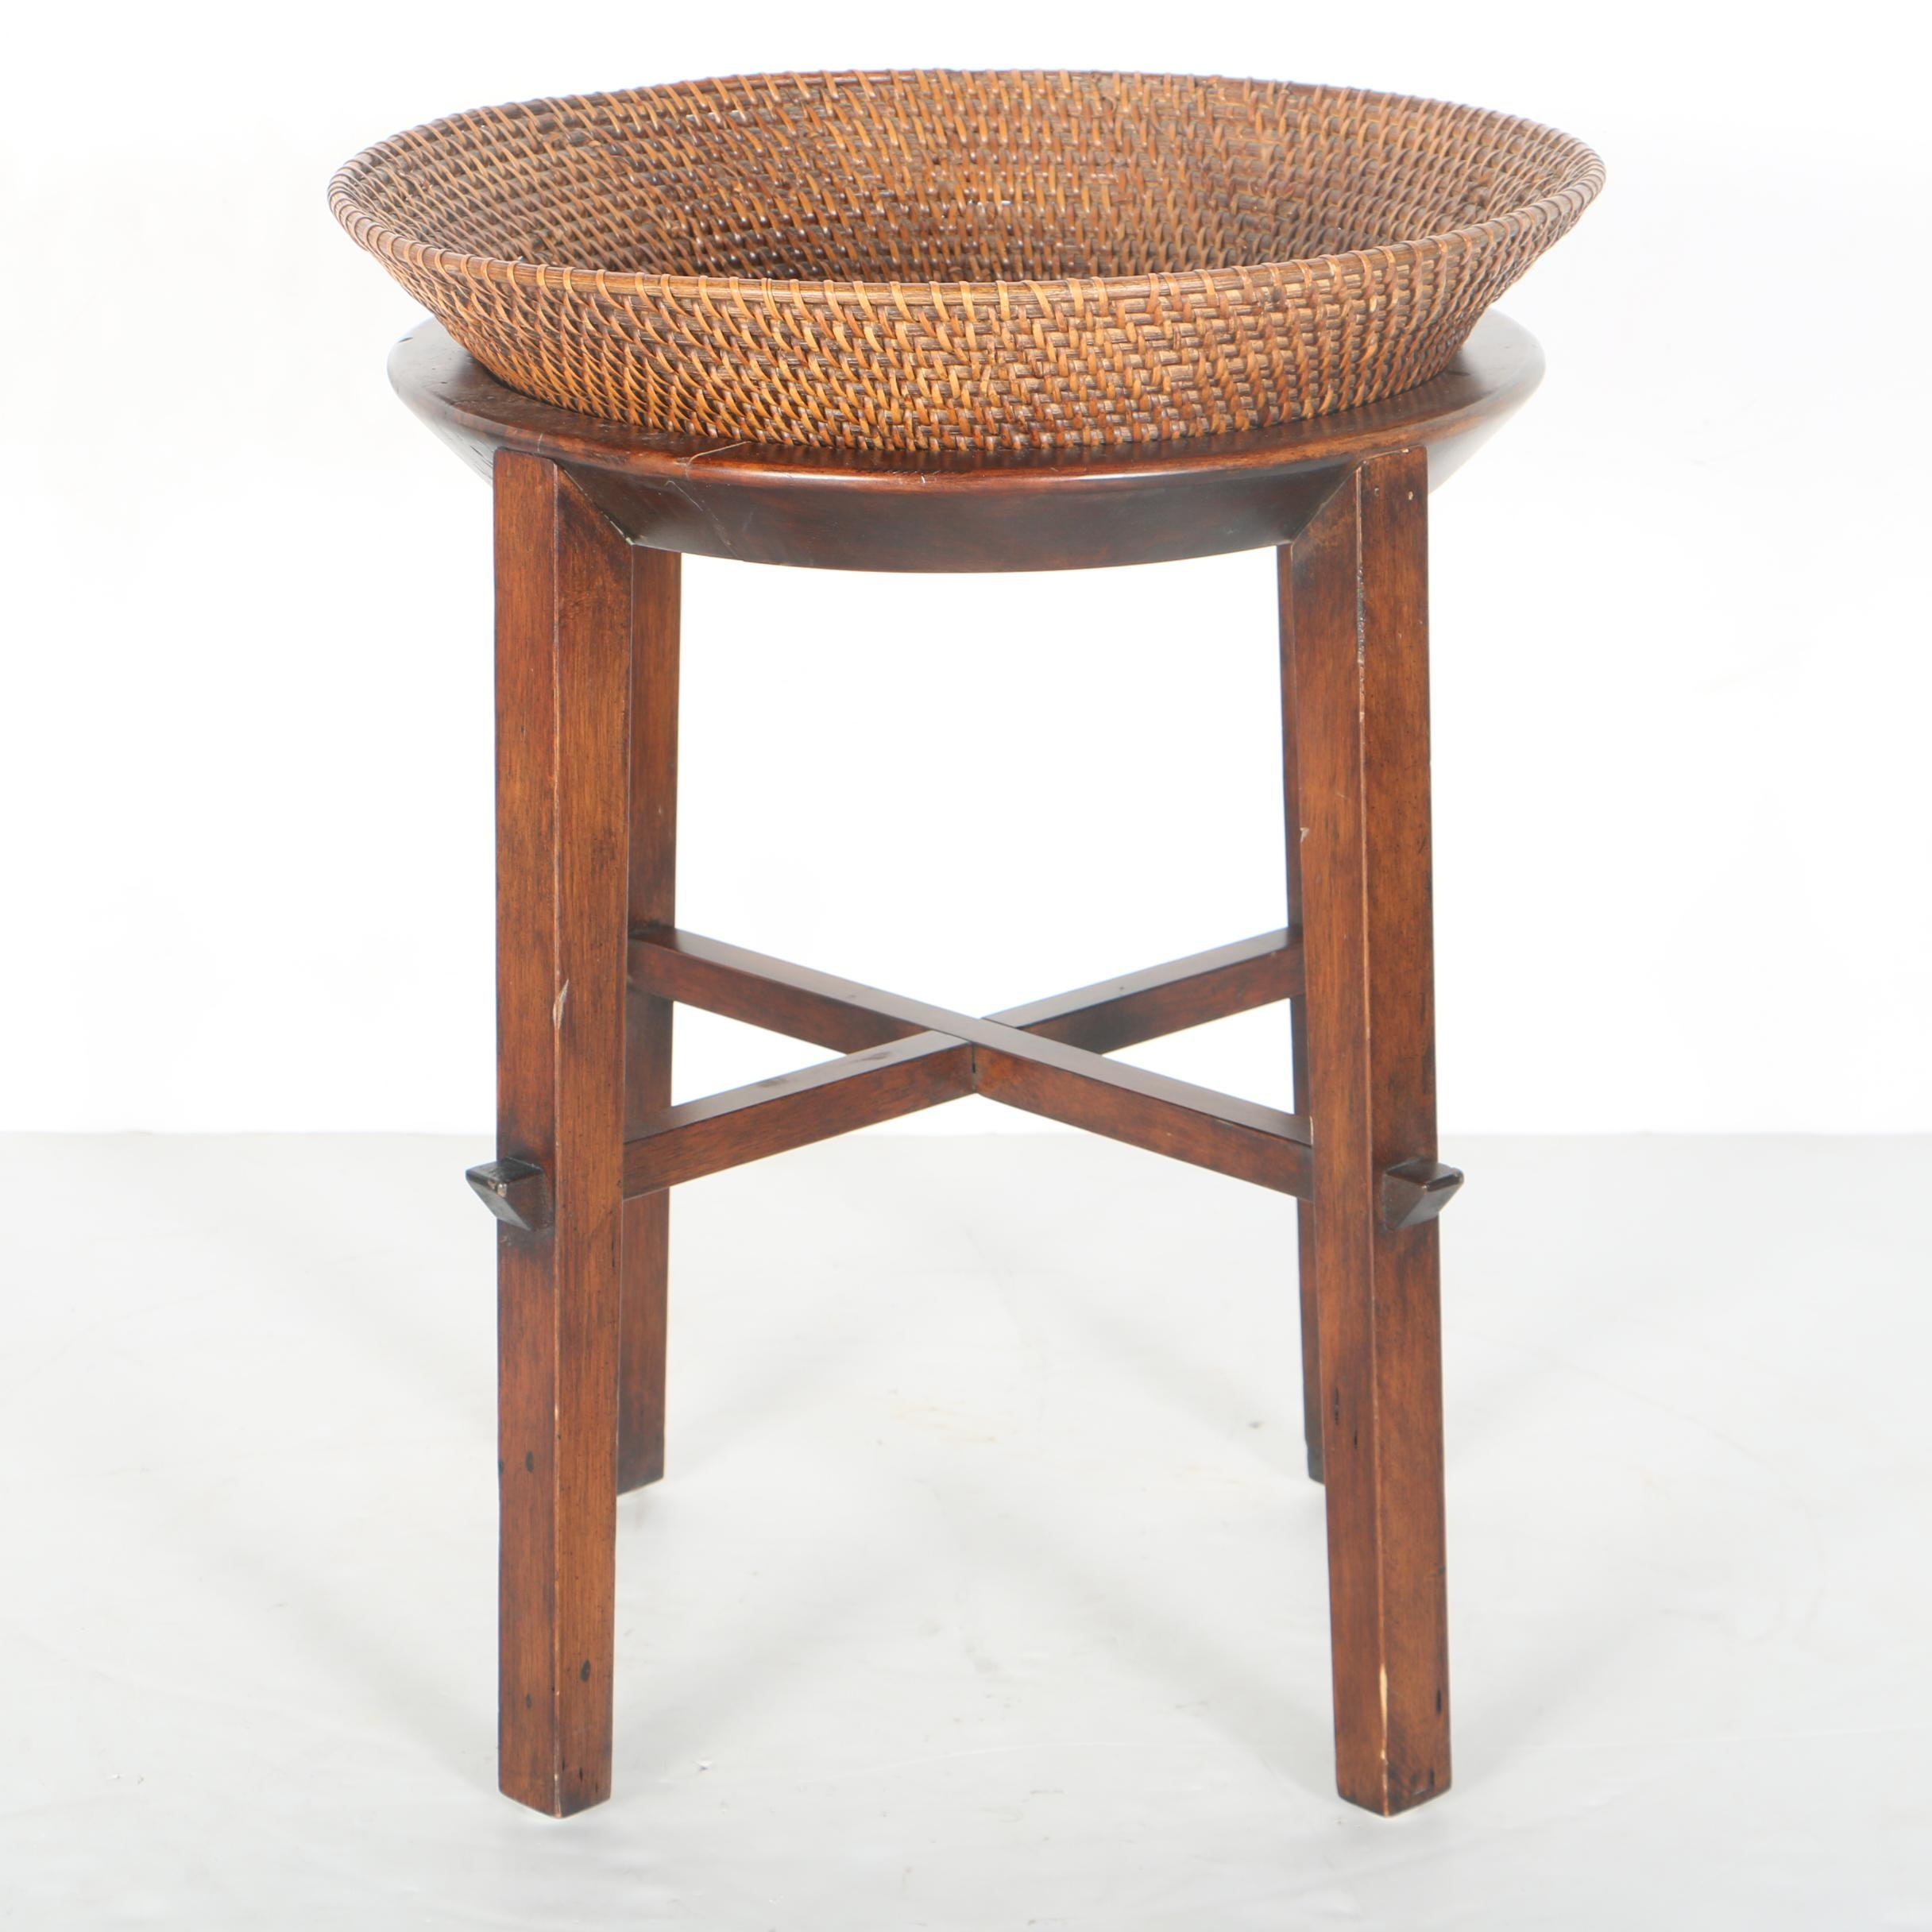 Woven Basket With Wooden Stand